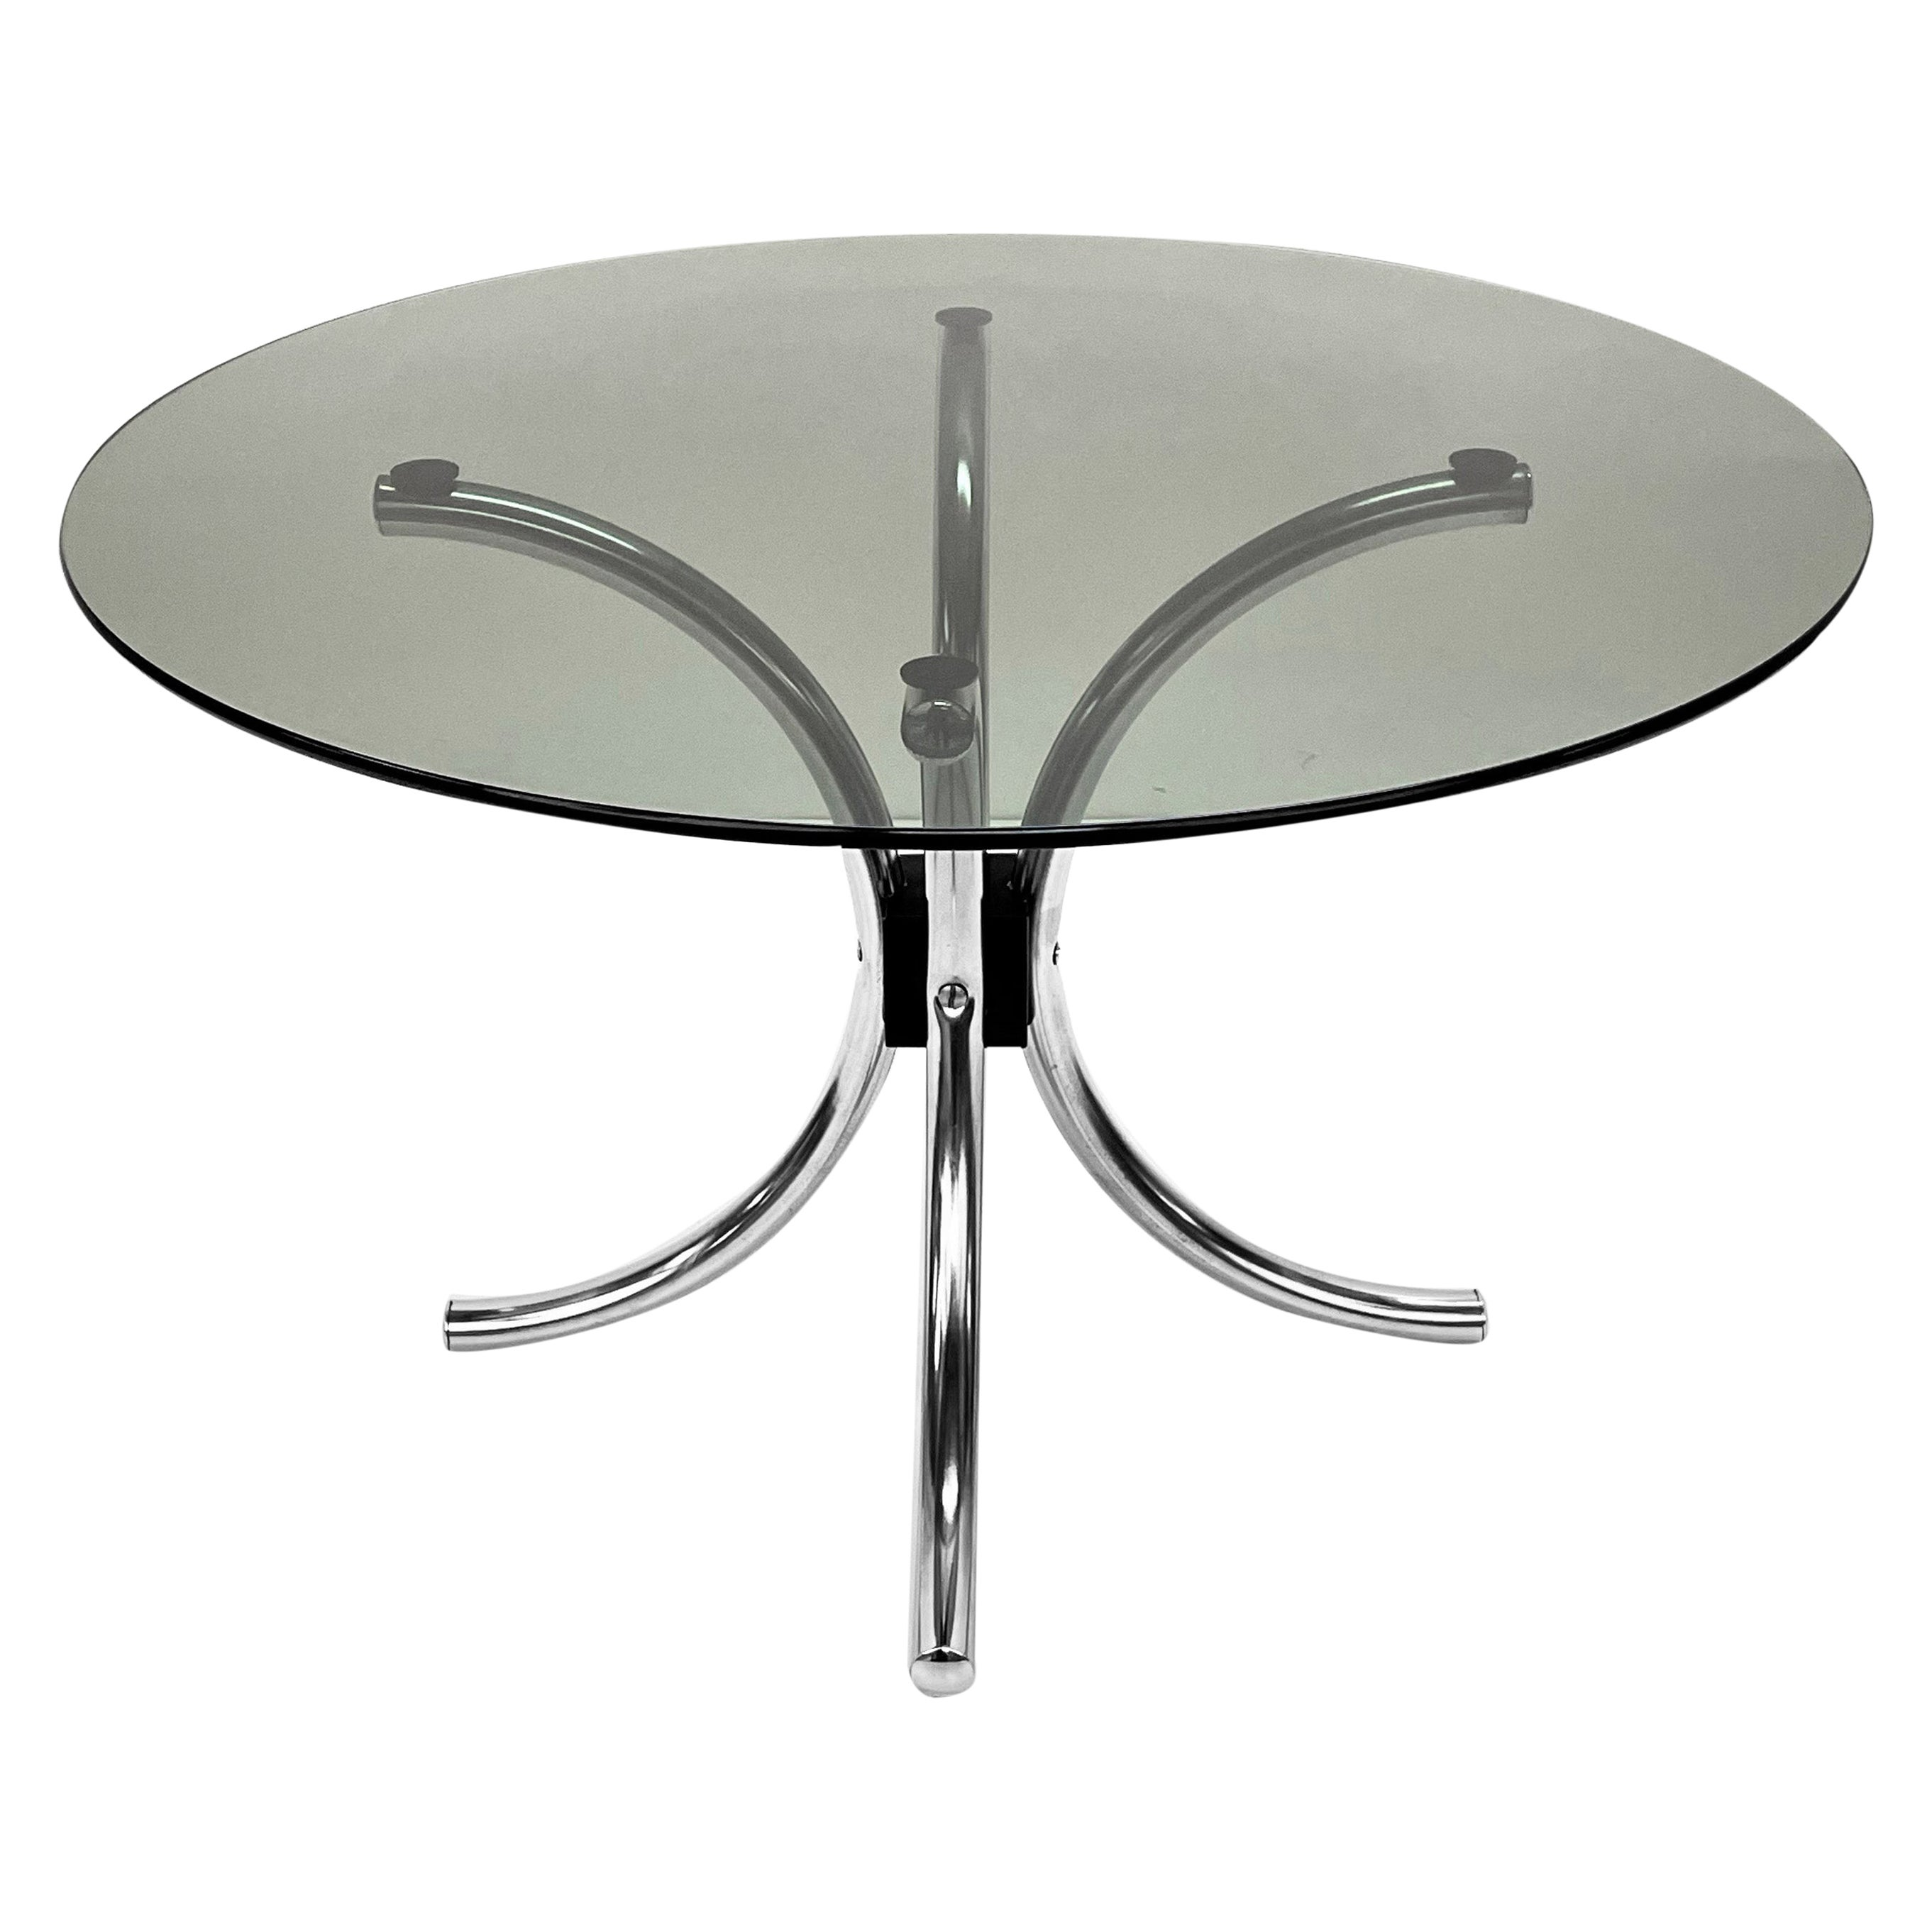 Midcentury Chromed Steel Italian Coffee Table with Smoked Glass Round Top, 1960s